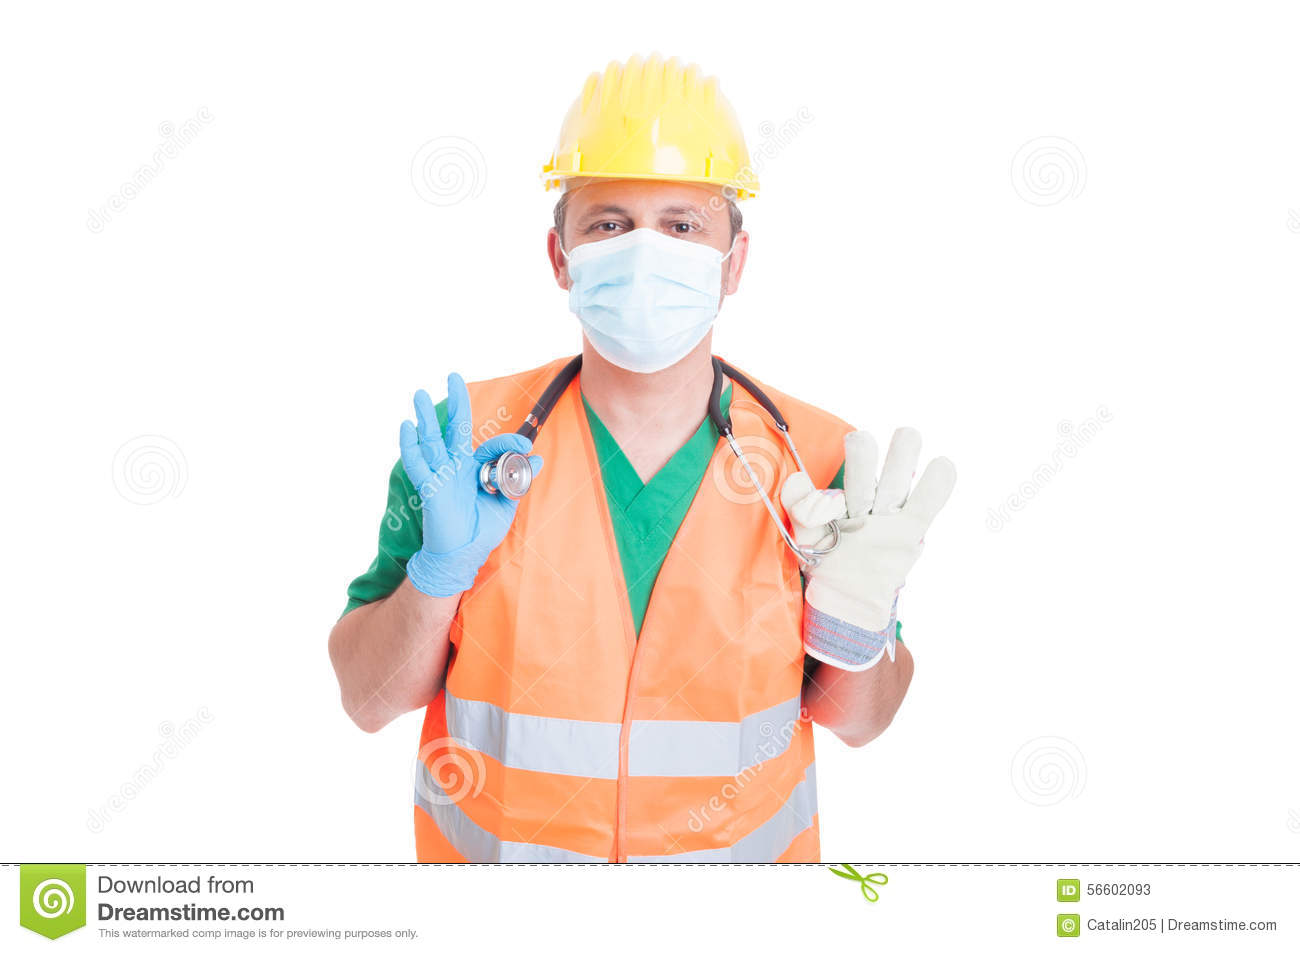 Doctor medic or builder or constructor jobs stock image for Finding a builder